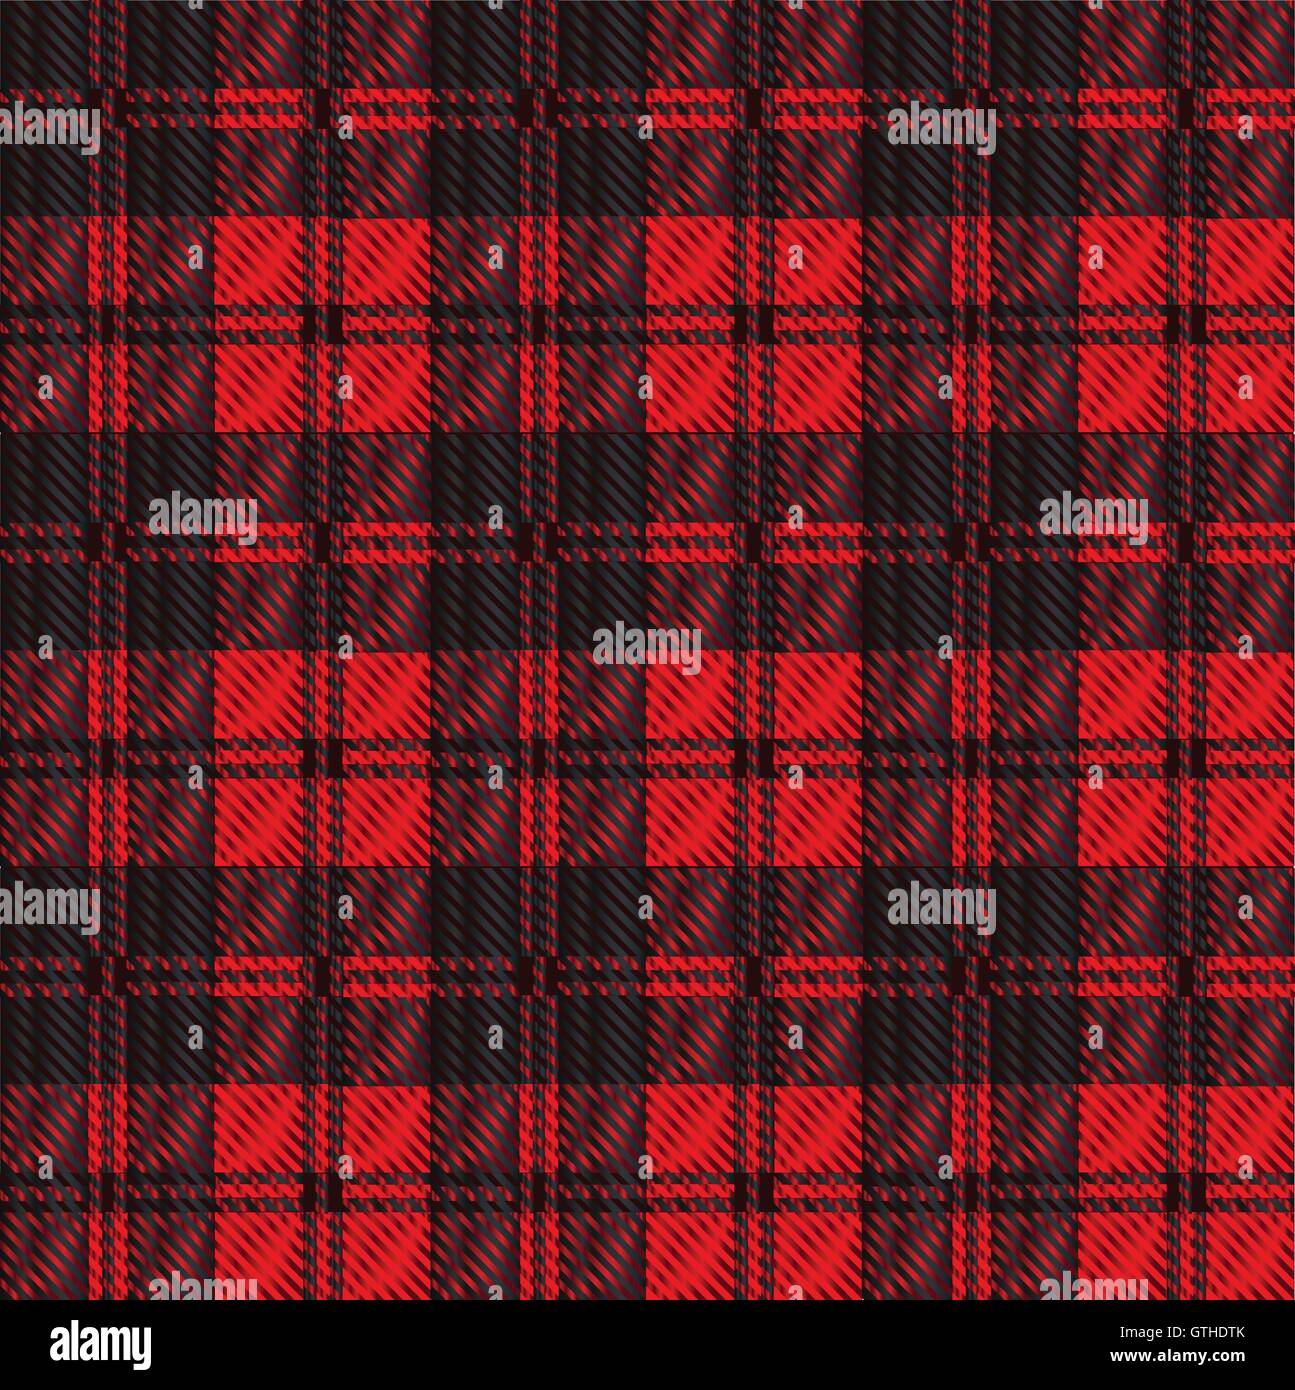 Red and black tartan wool weaved material - Stock Vector